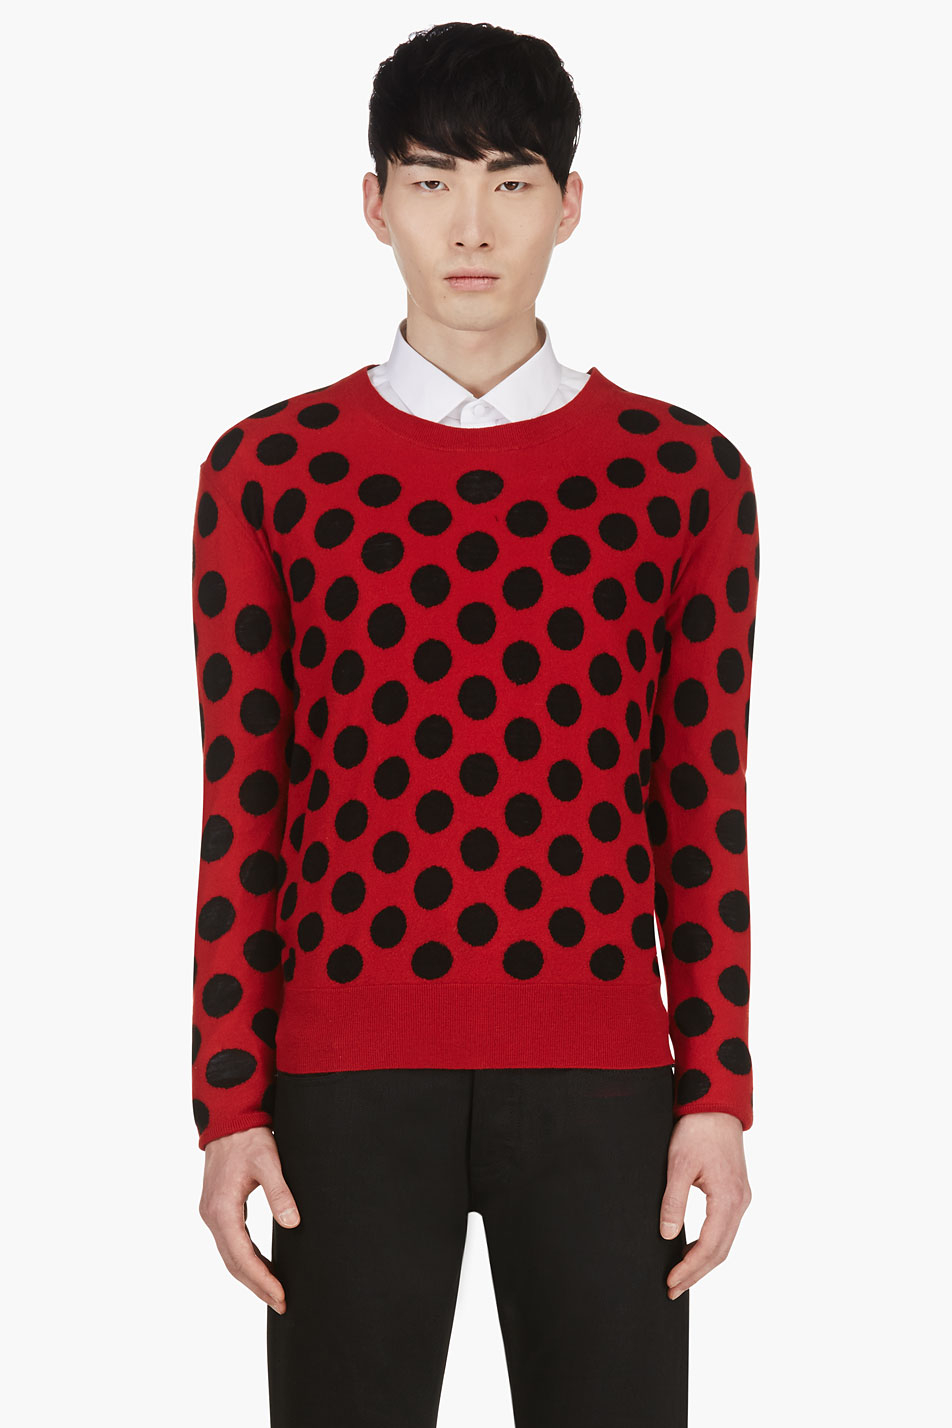 Burberry prorsum Red And Black Intarsia Polka Dot Sweater in Red ...